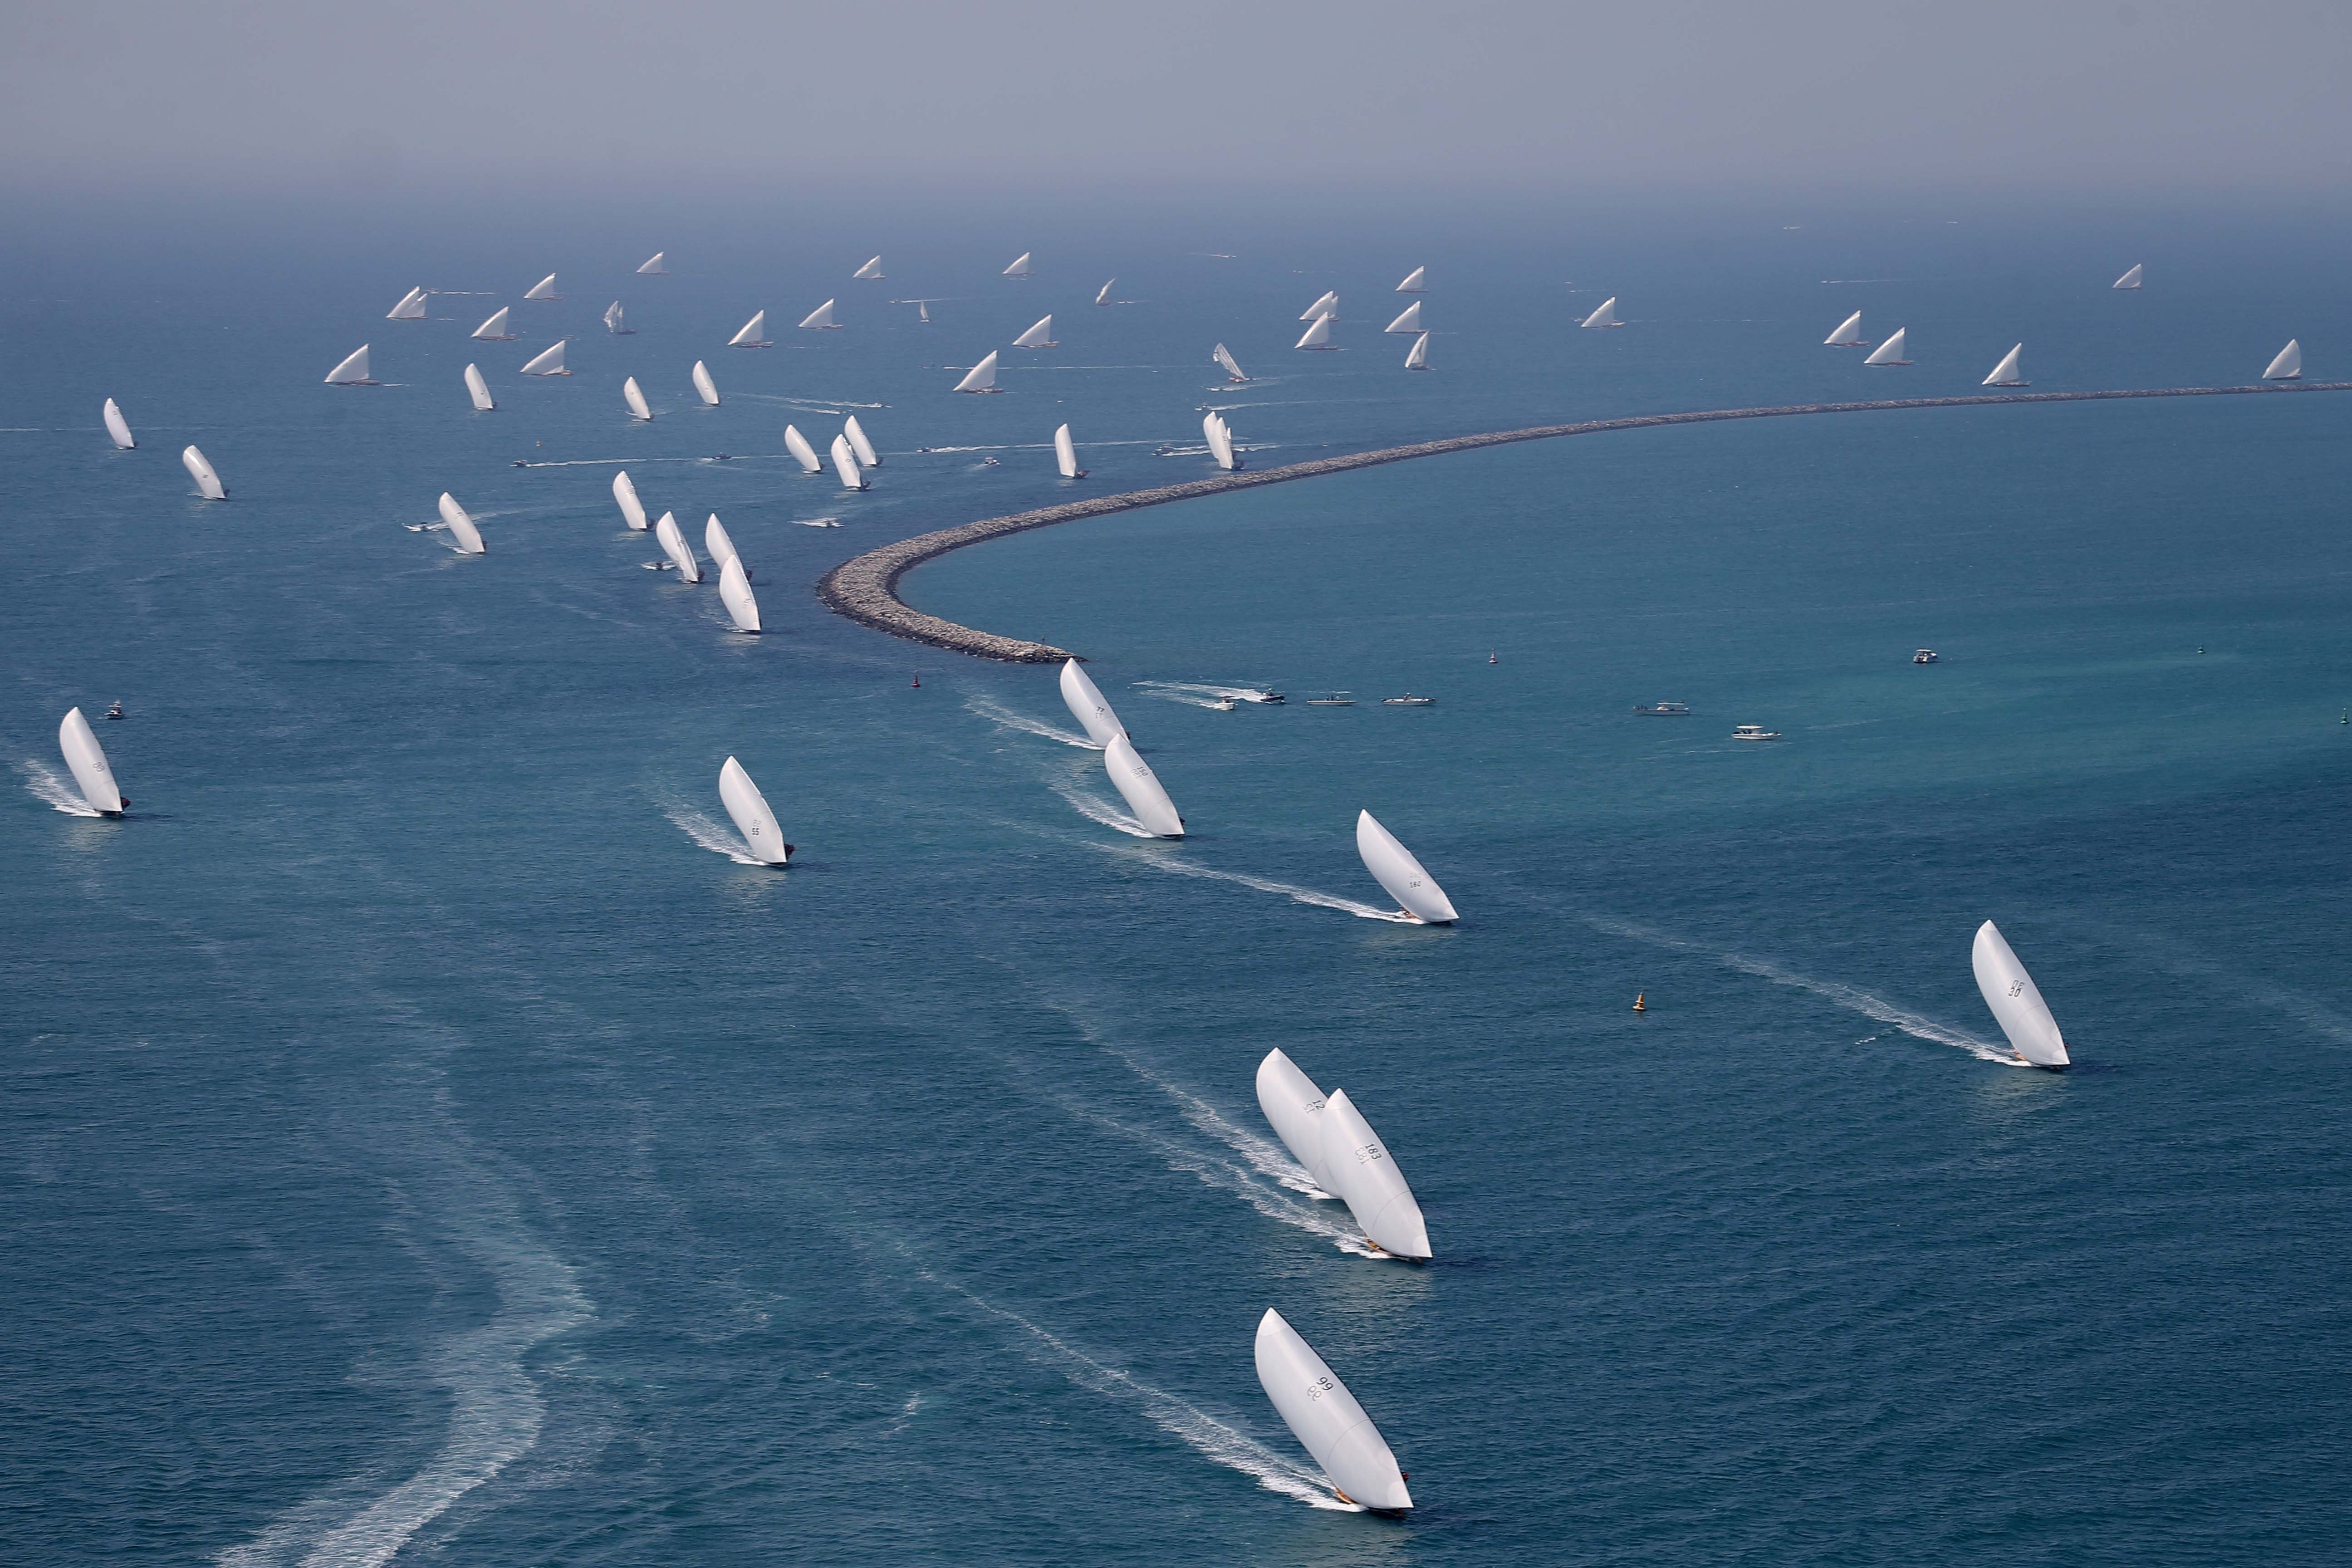 80 boats for the first round of 60ft Dhow Race today